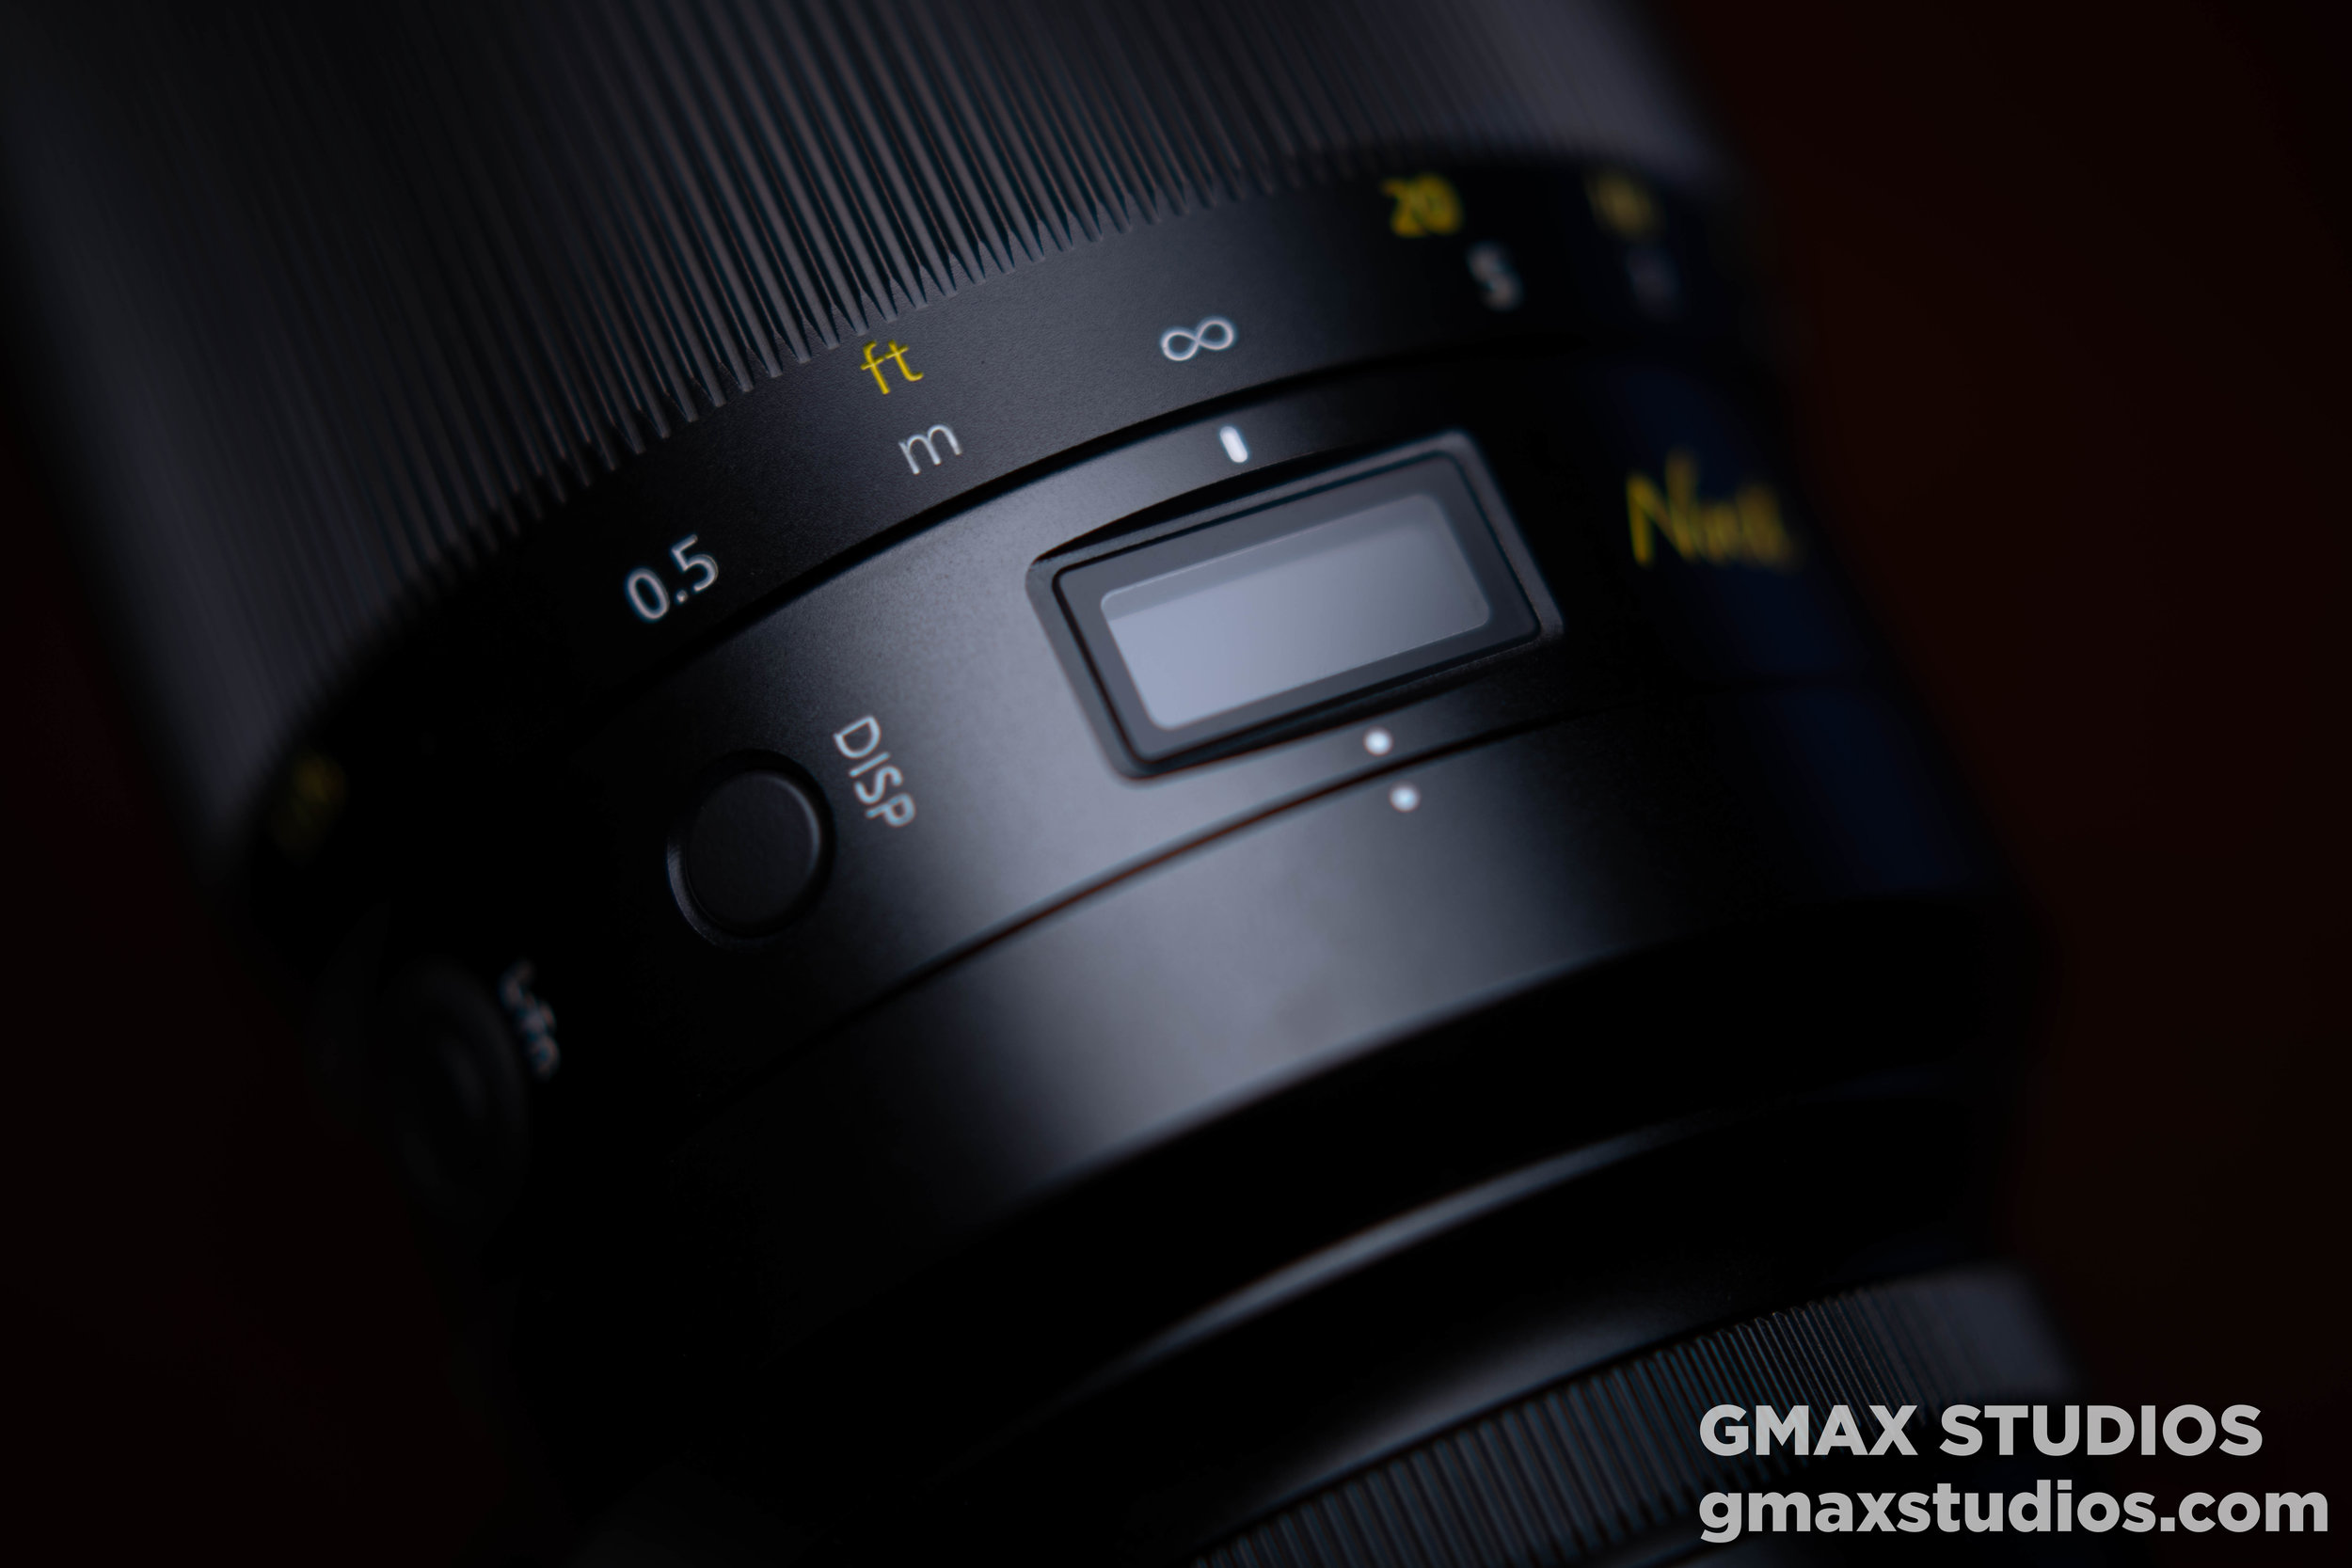 The Noct display or the lens information panel which will confirm aperture, focus distance and depth of field - right on the lens.